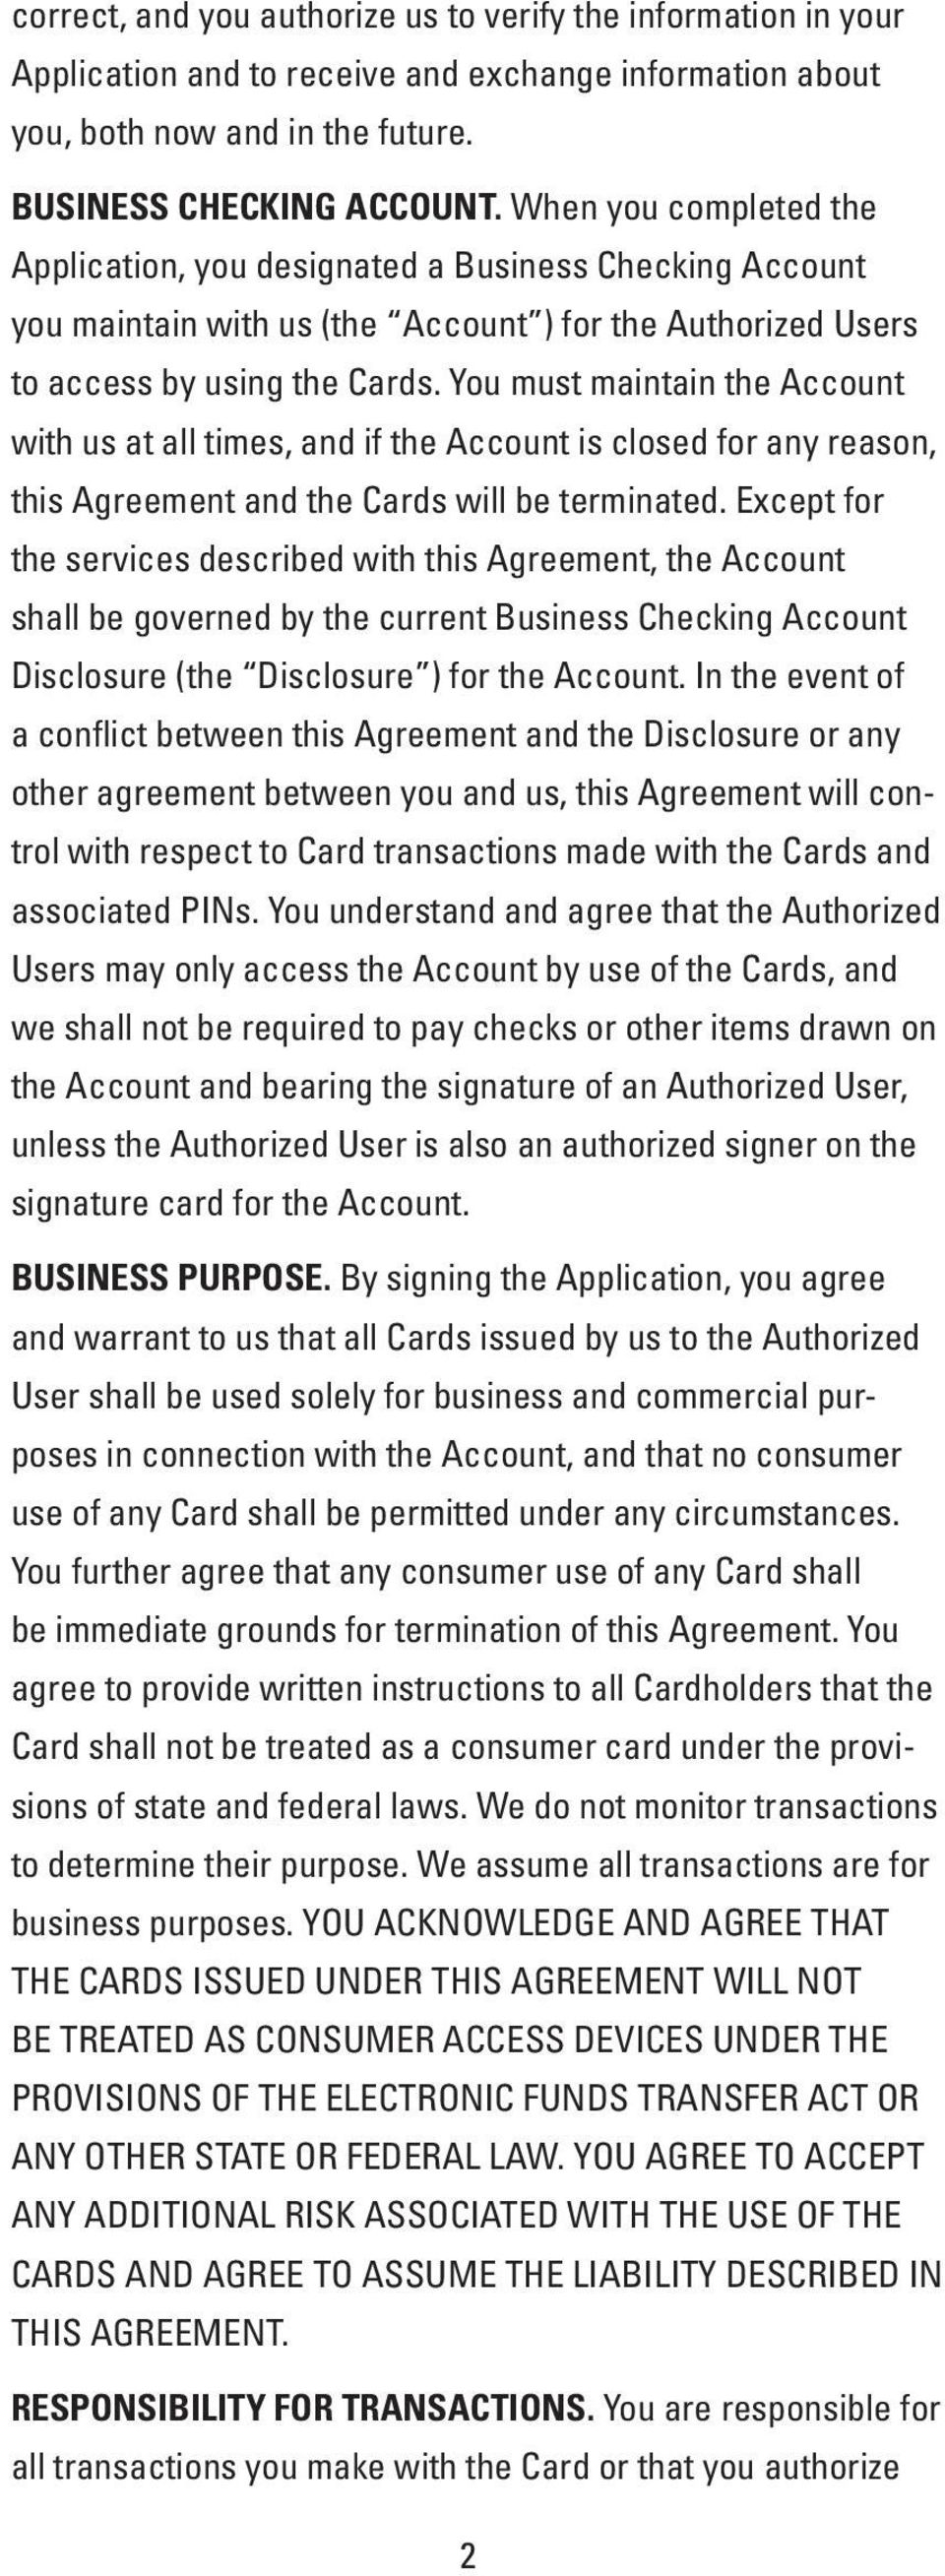 You must maintain the Account with us at all times, and if the Account is closed for any reason, this Agreement and the Cards will be terminated.